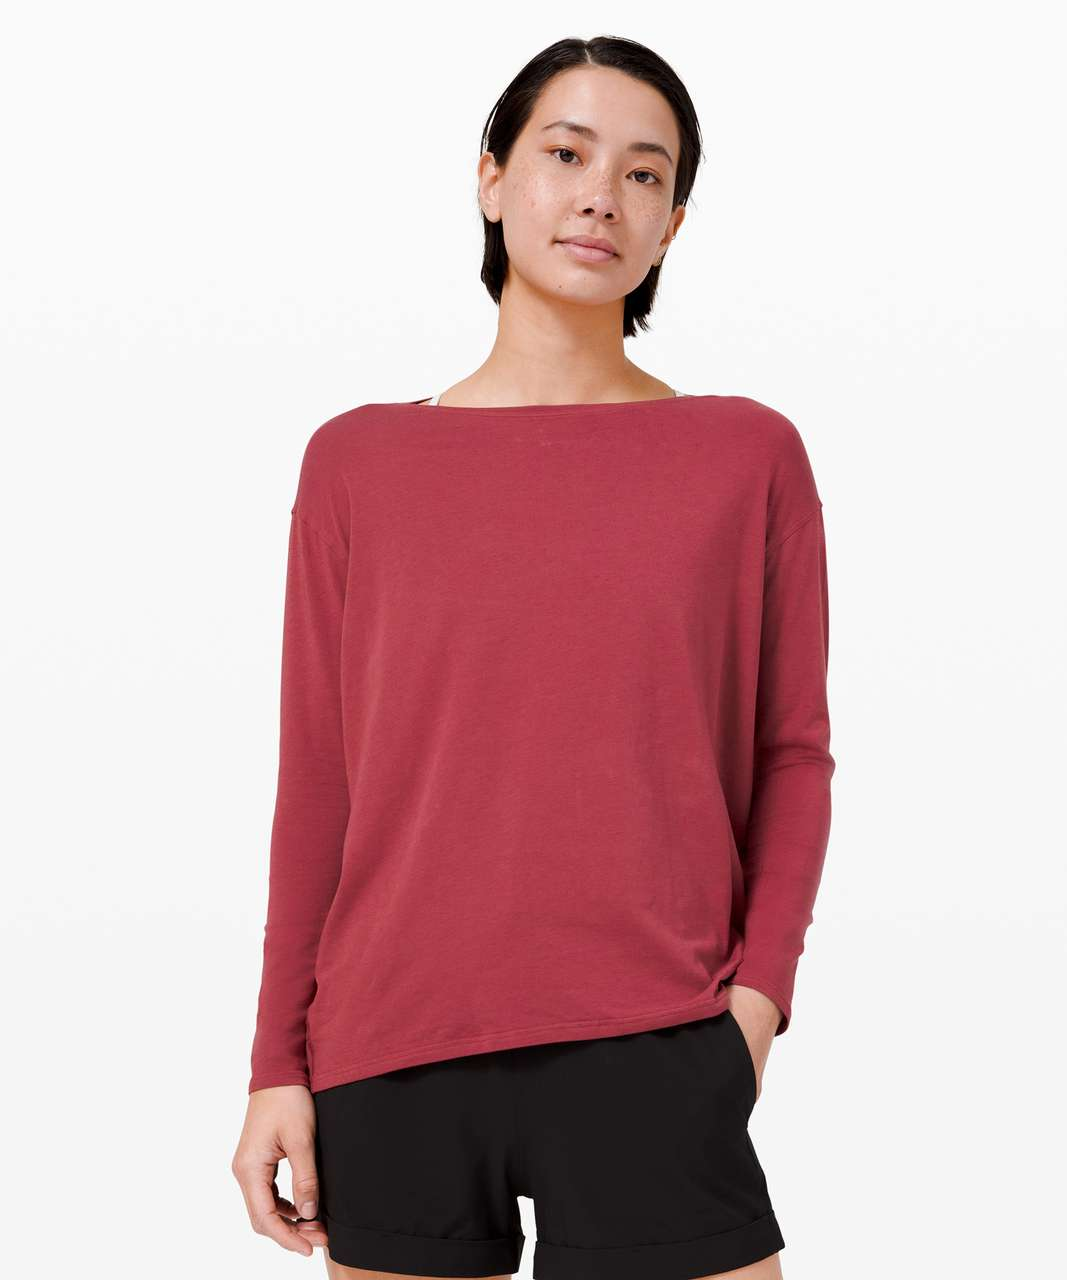 Lululemon Back In Action Long Sleeve - Chianti